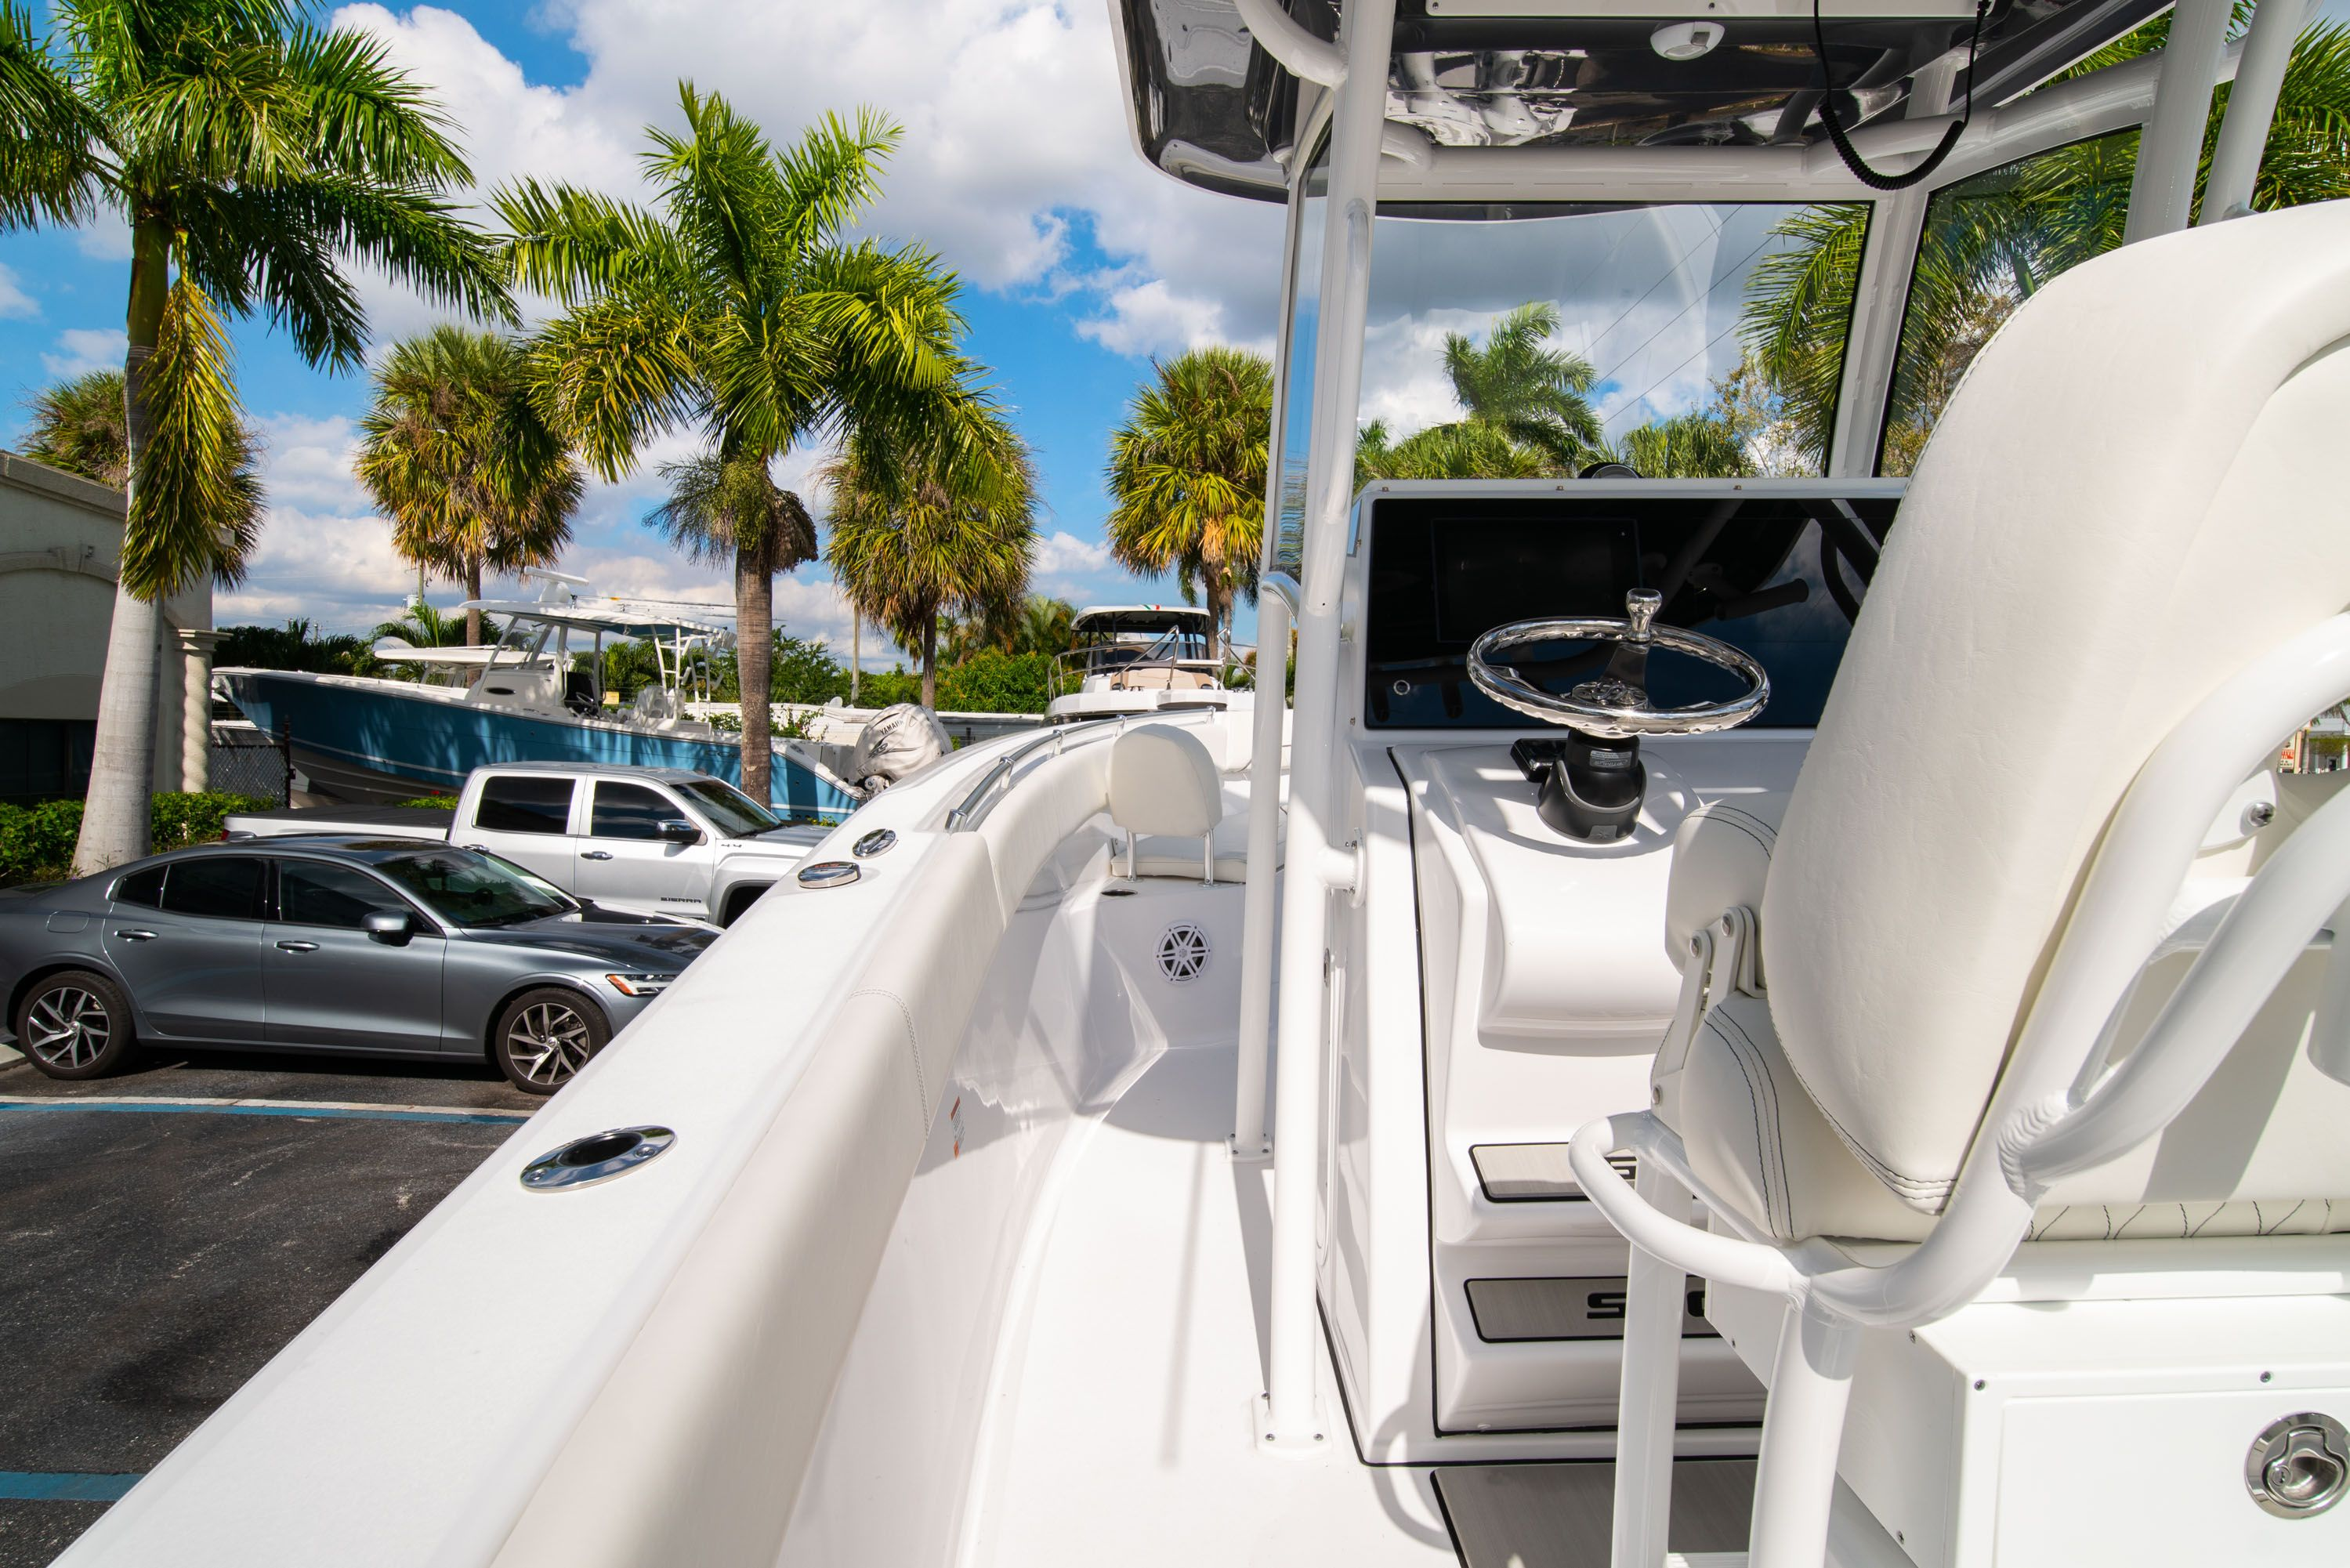 Thumbnail 24 for New 2020 Sportsman Heritage 251 Center Console boat for sale in West Palm Beach, FL